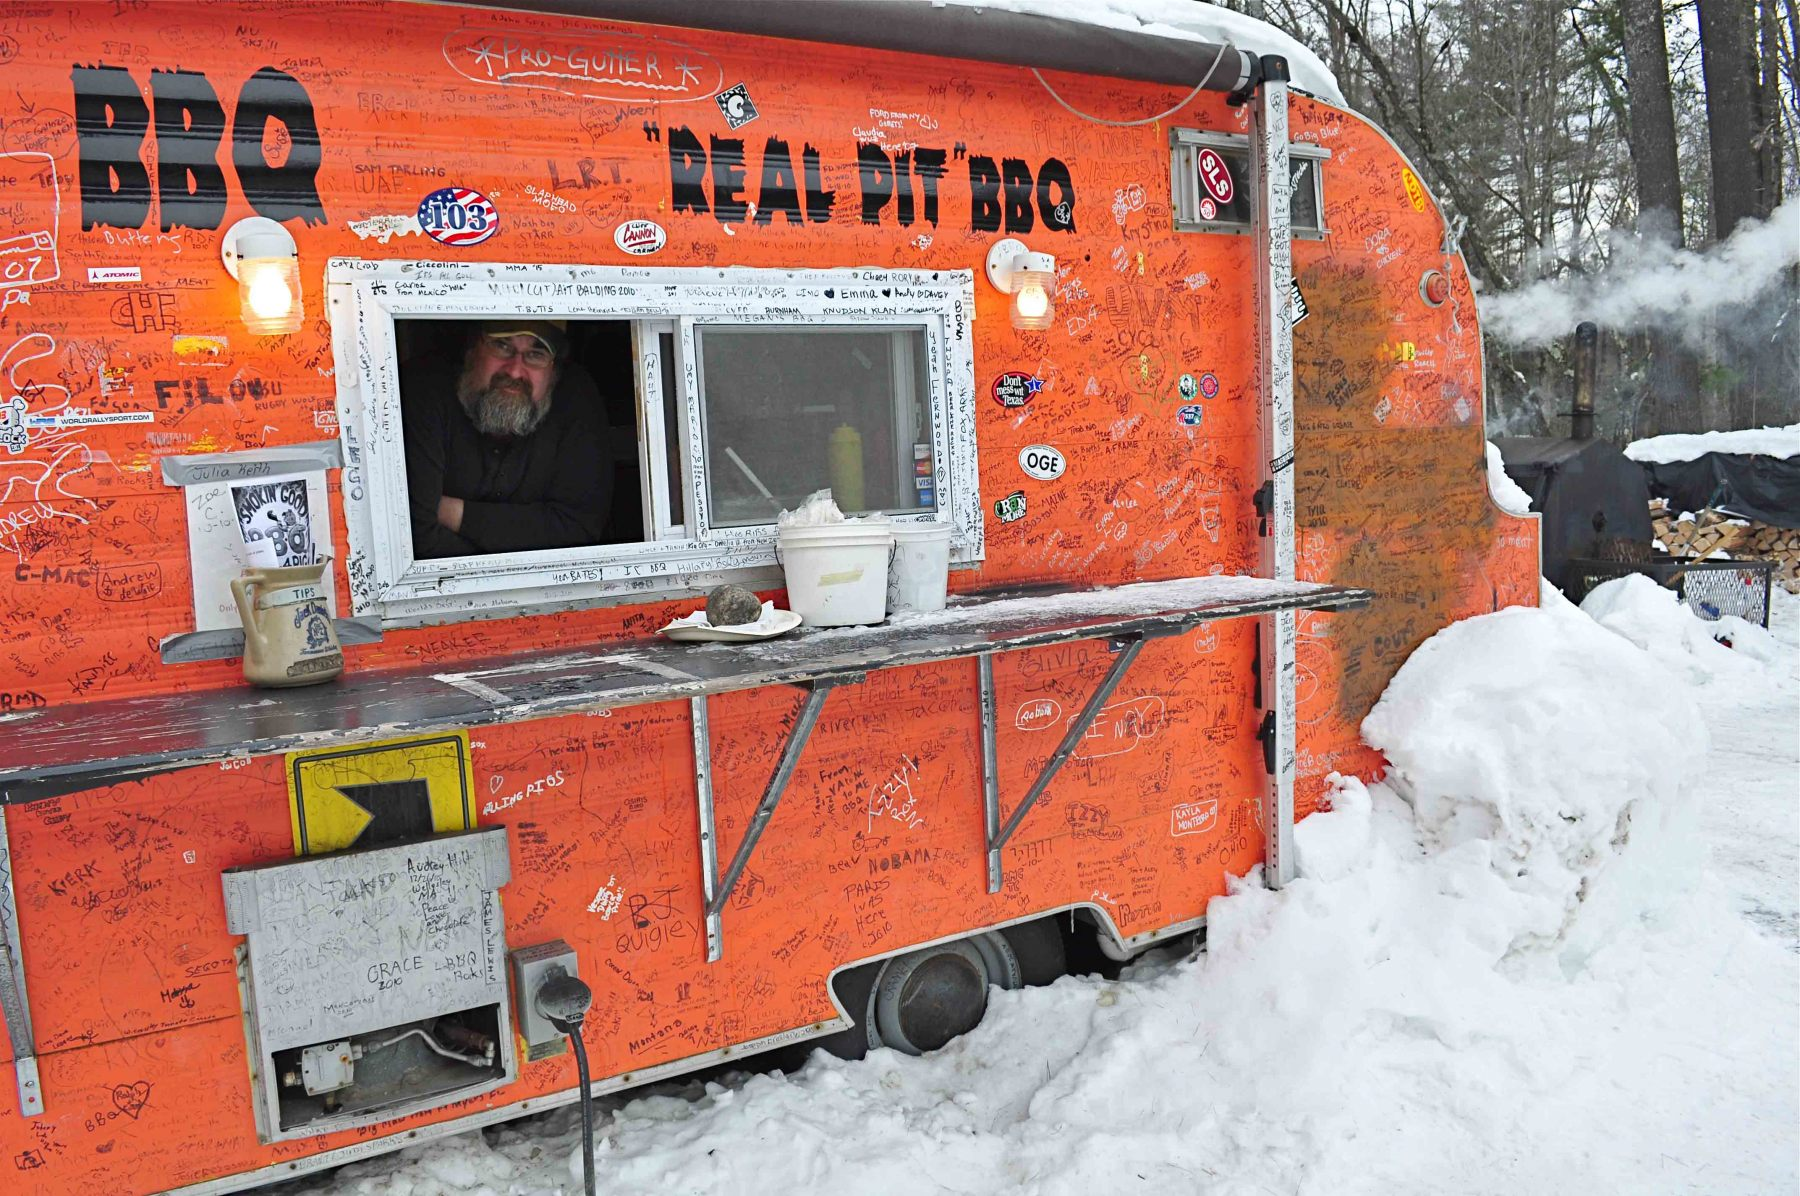 Barbecue stand, Bethel, Maine